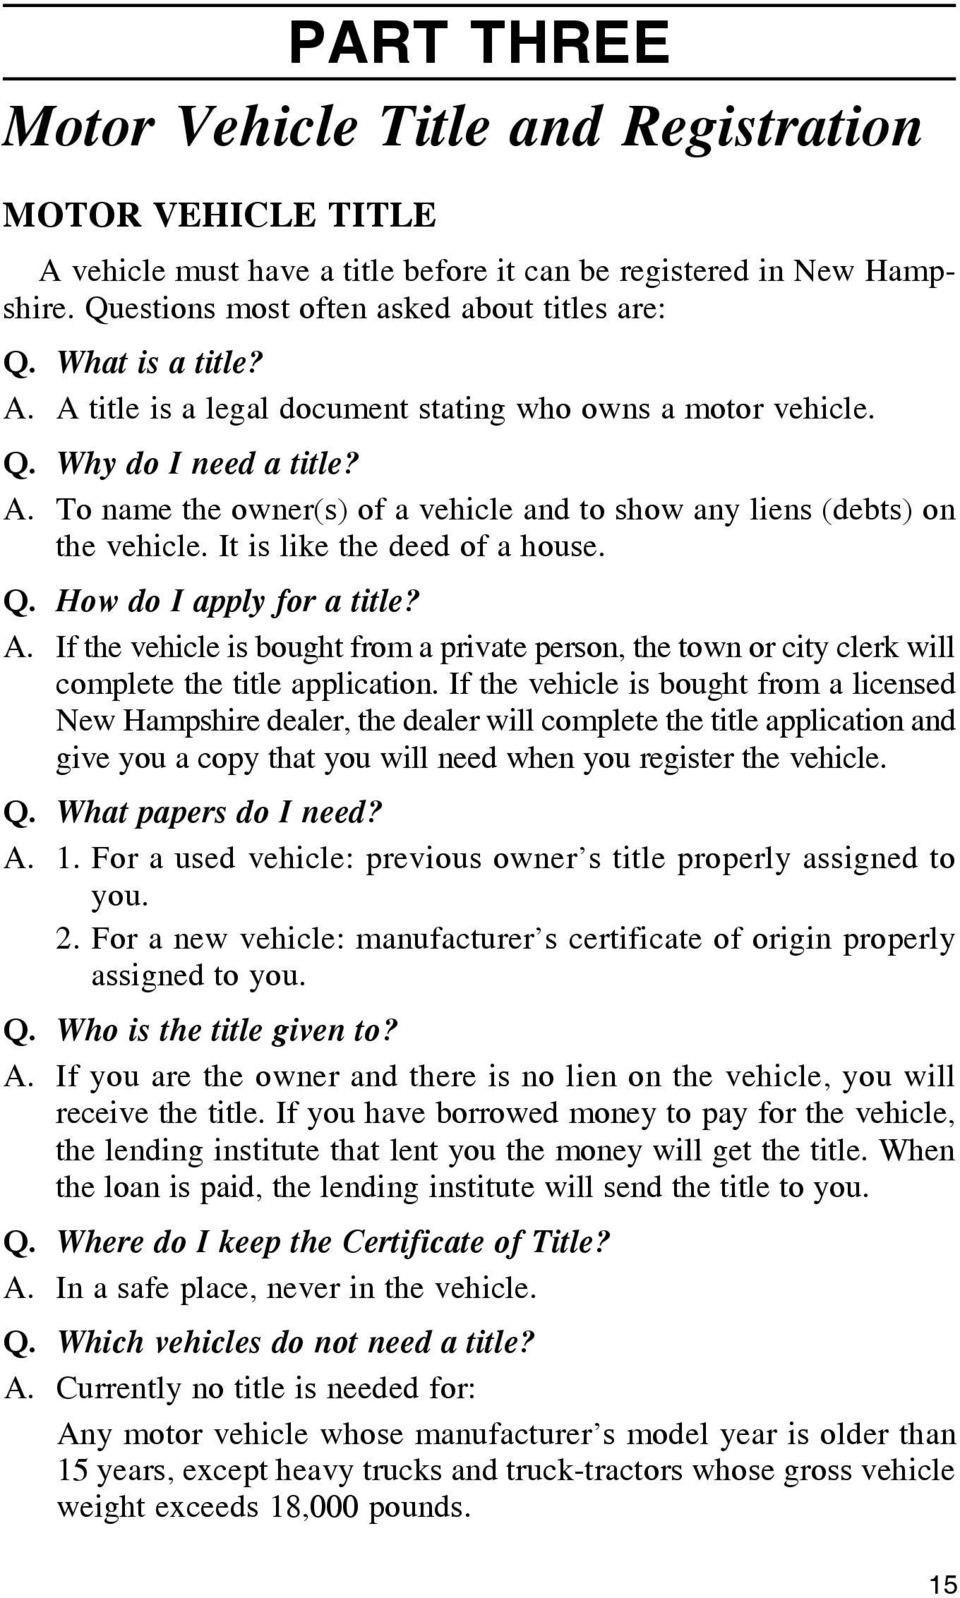 It is like the deed of a house. Q. How do I apply for a title? A. If the vehicle is bought from a private person, the town or city clerk will complete the title application.